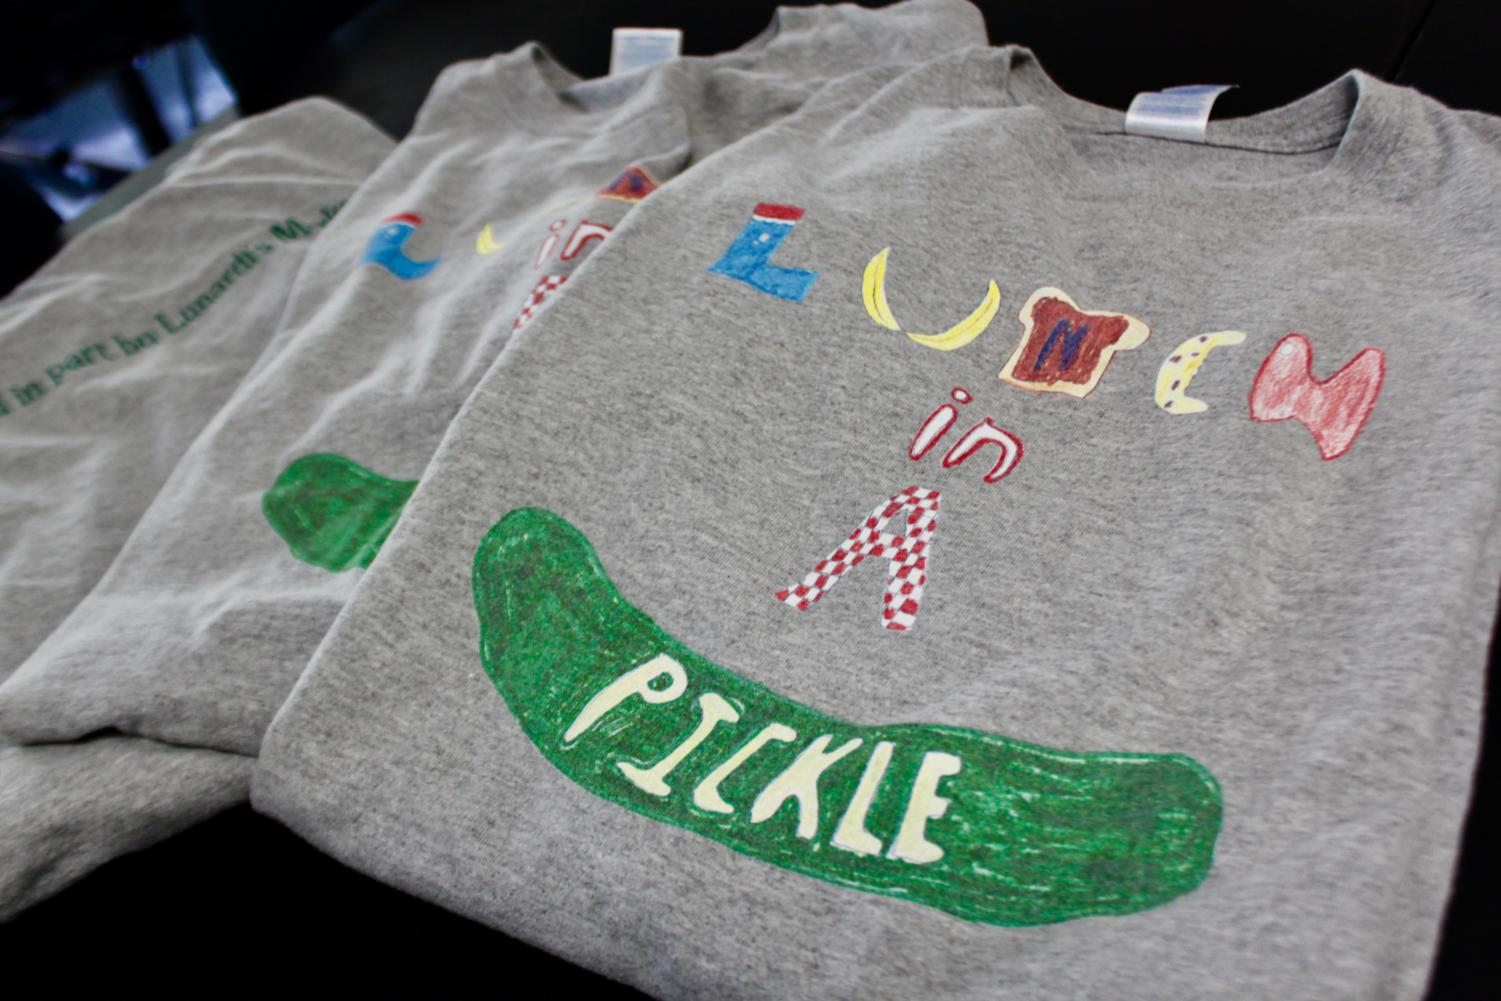 Specially designed t-shirts serve as uniforms for students who deliver sandwiches for Lunch in a Pickle Club.